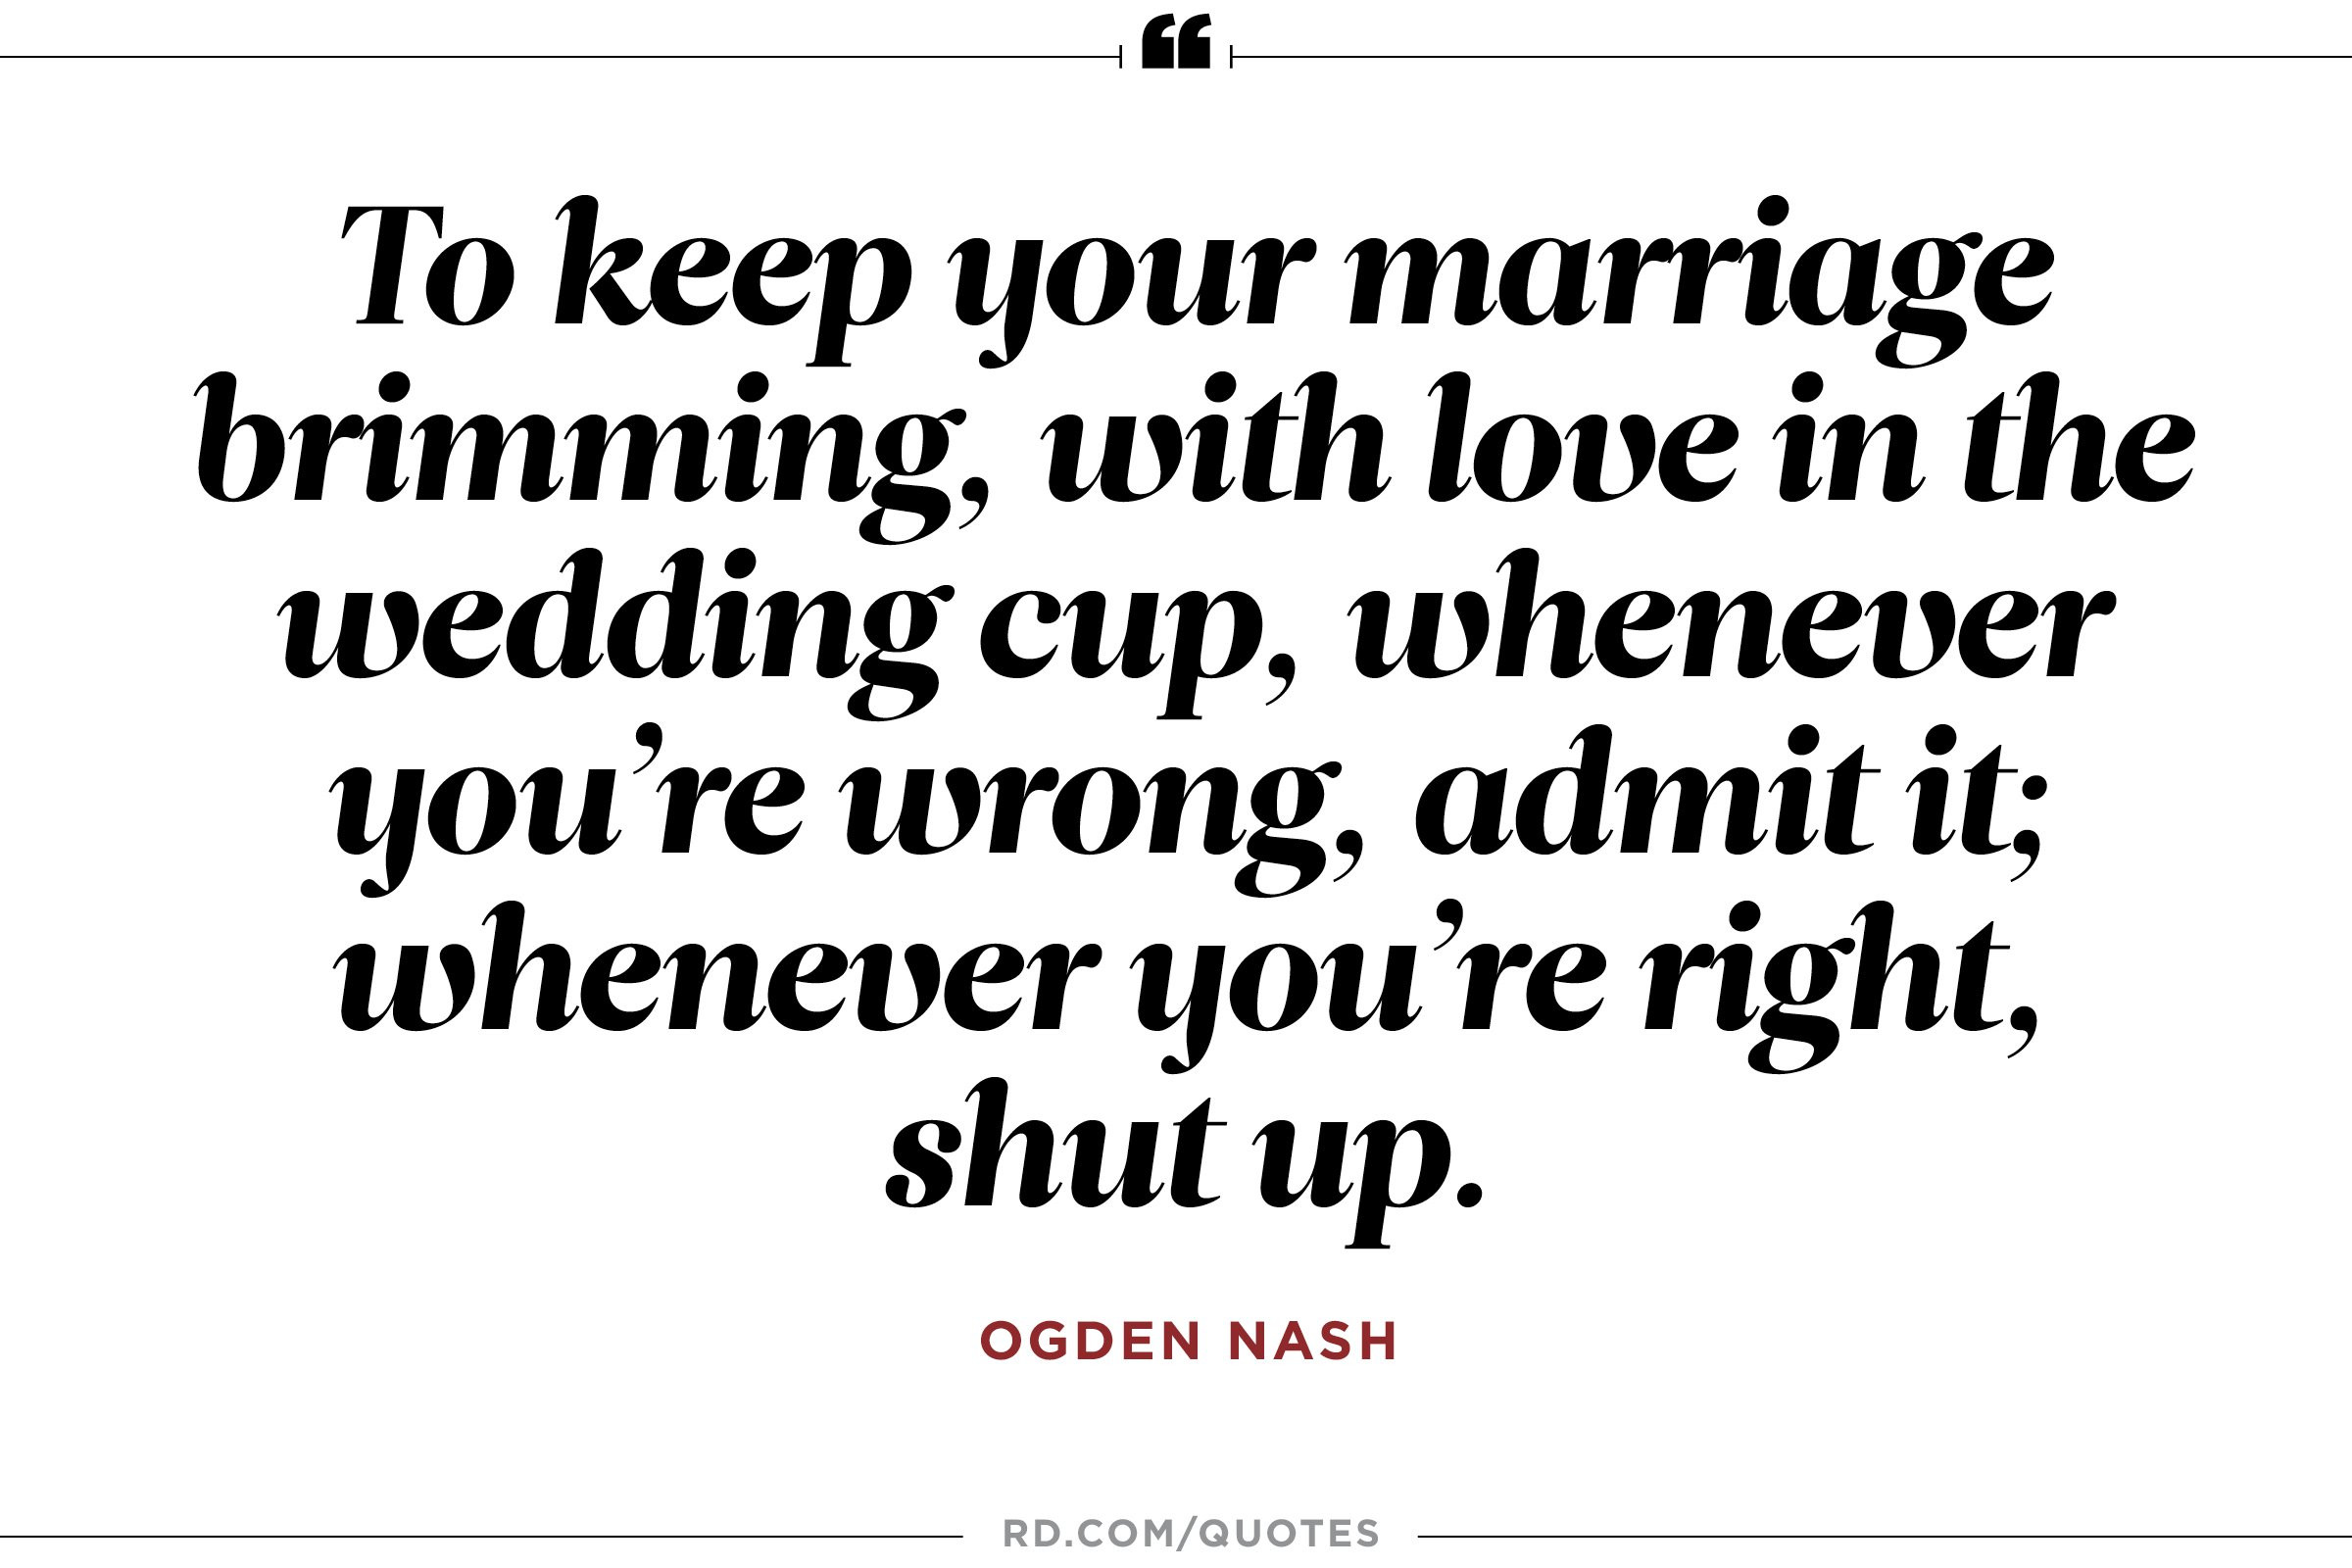 Quotes Of Marriage  8 Funny Marriage Quotes From the Greatest Wits of All Time